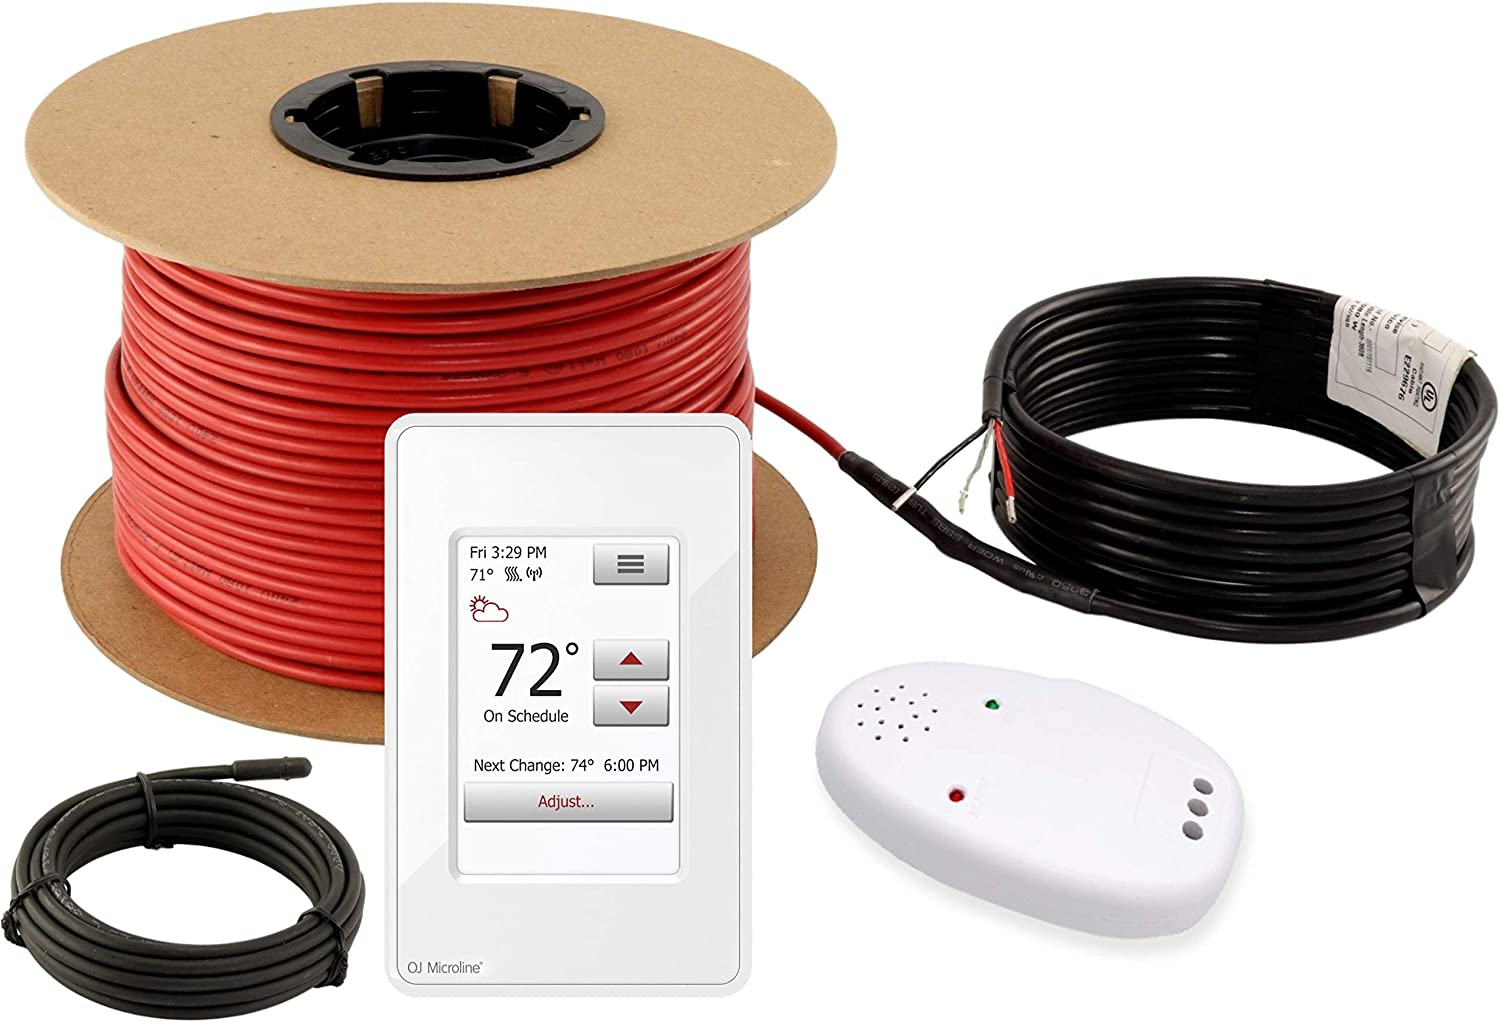 LuxHeat Floor Heating Cable Set, 80 Sqft - 240v Electric Radiant Floor Heating System Under Tile, Laminate. Underfloor Heating Kit Includes Cable, OJ Microline WIFI Programmable Thermostat with GFCI